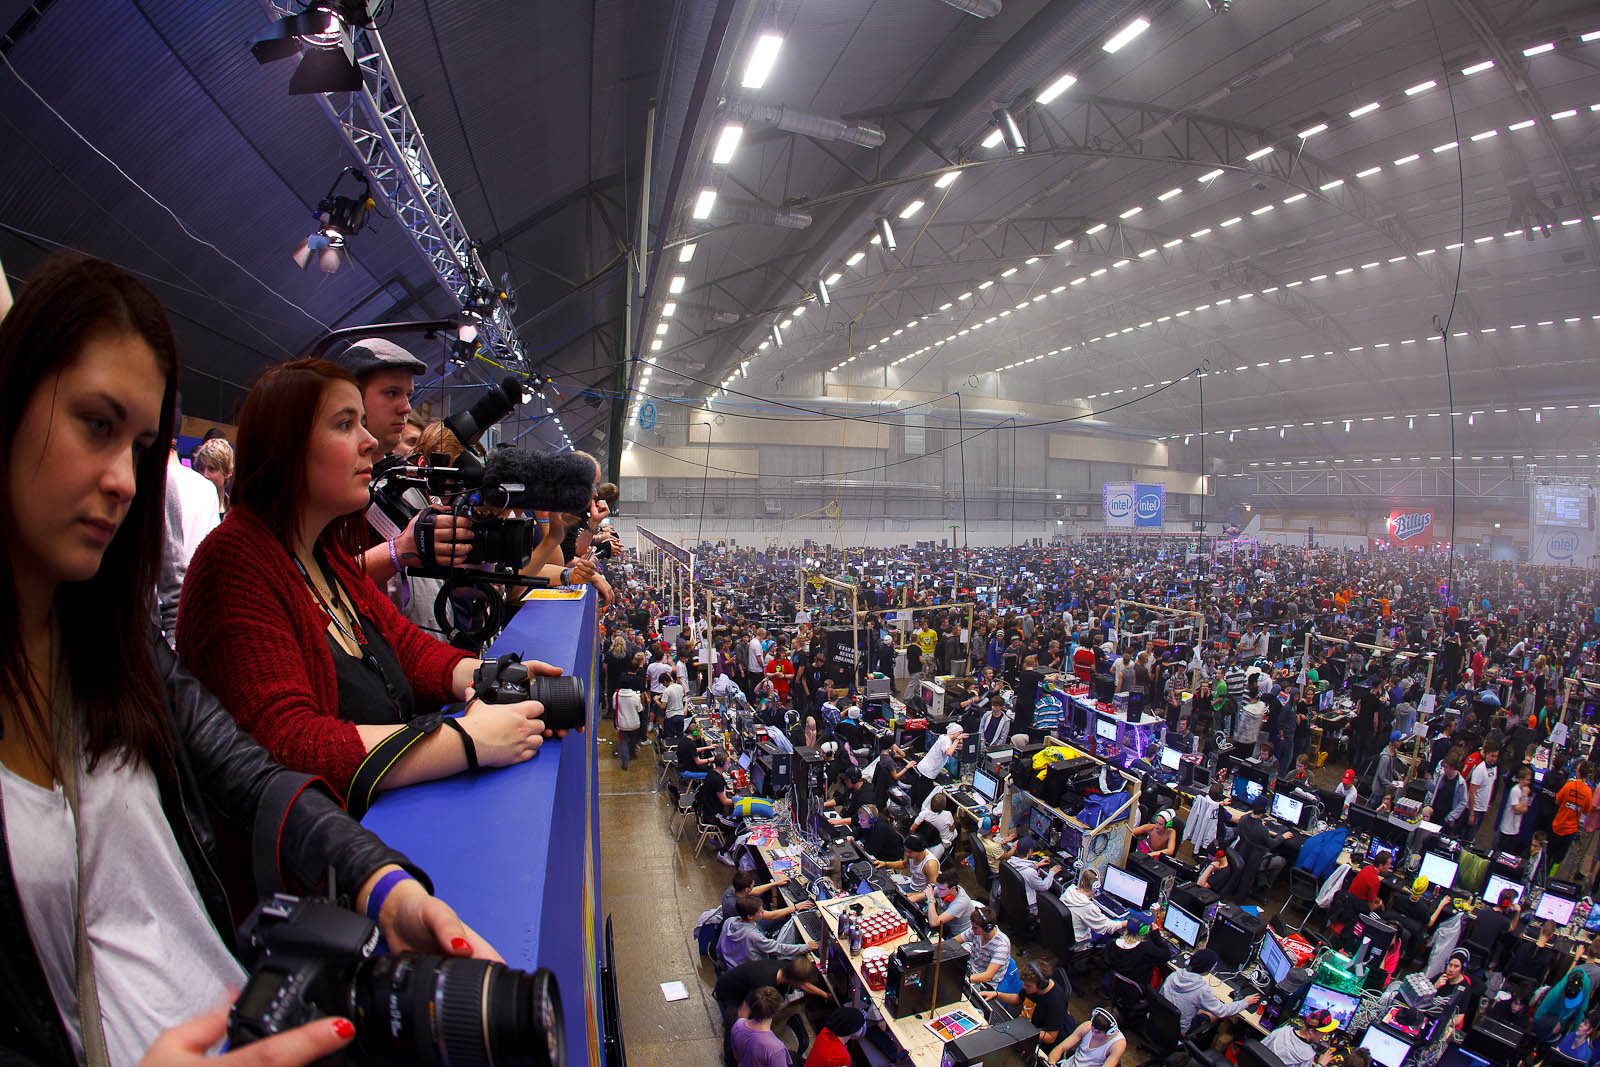 The press booth, DreamHack Winter 2011